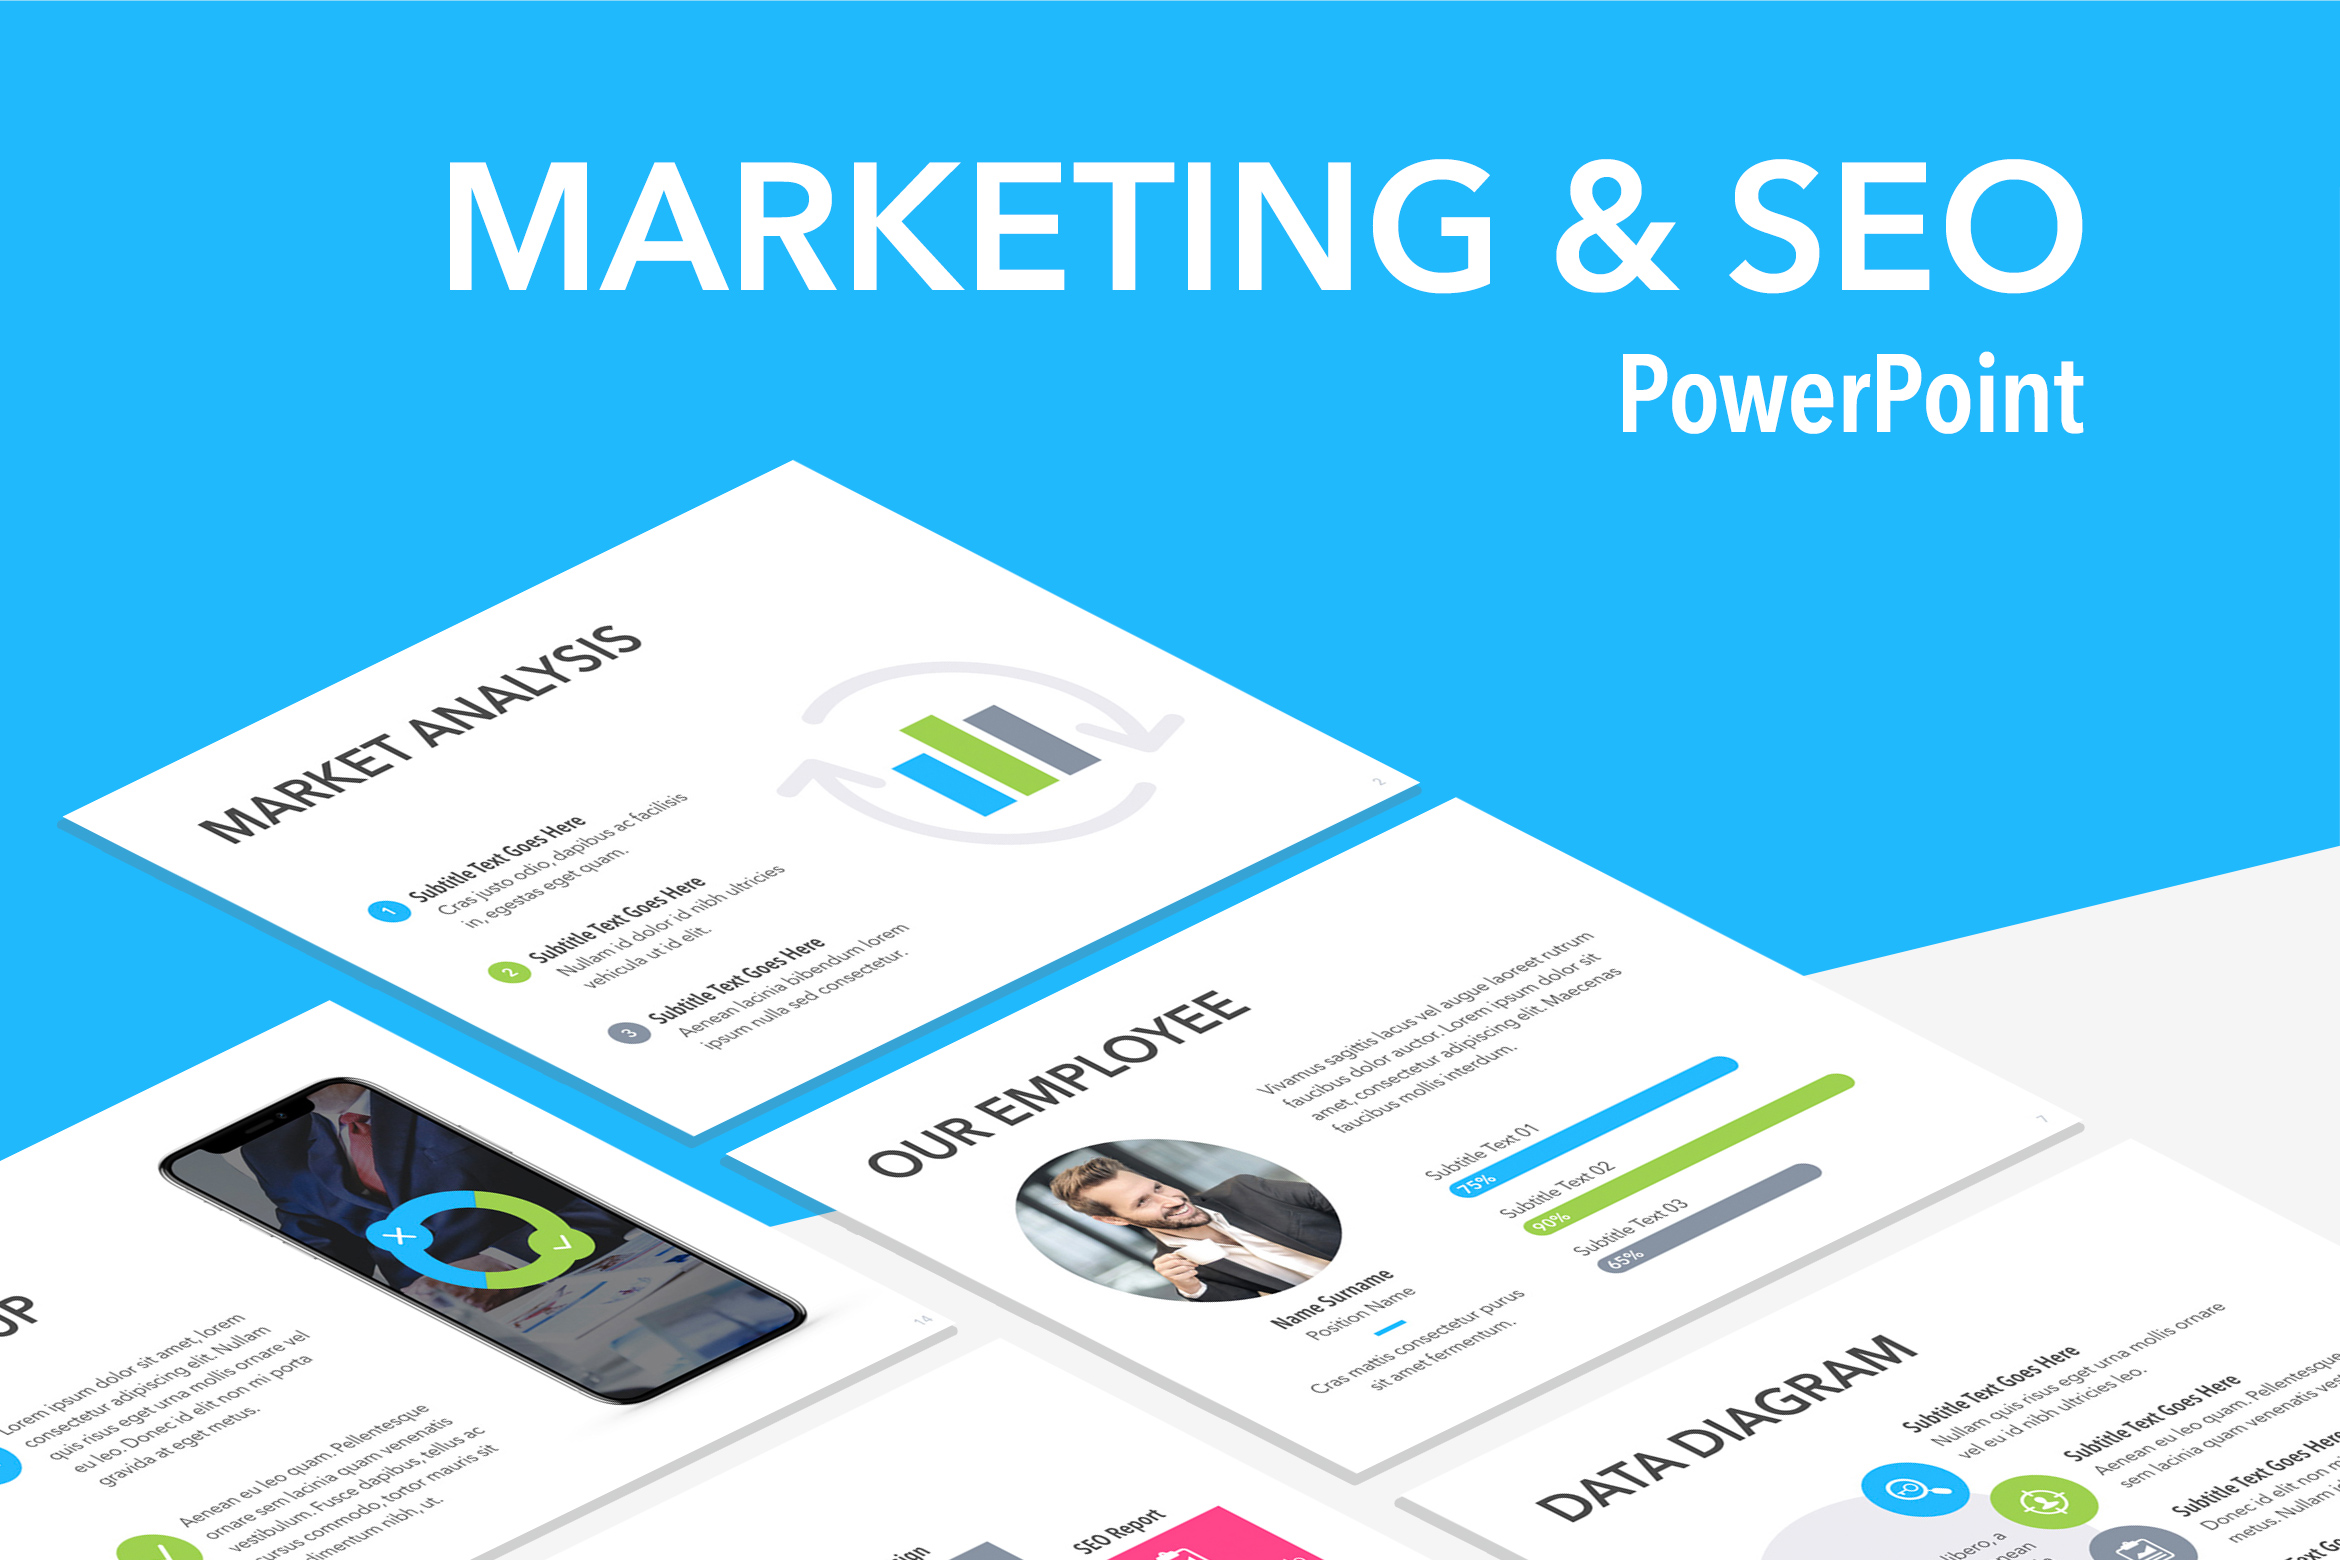 Marketing & SEO PowerPoint Template example image 1